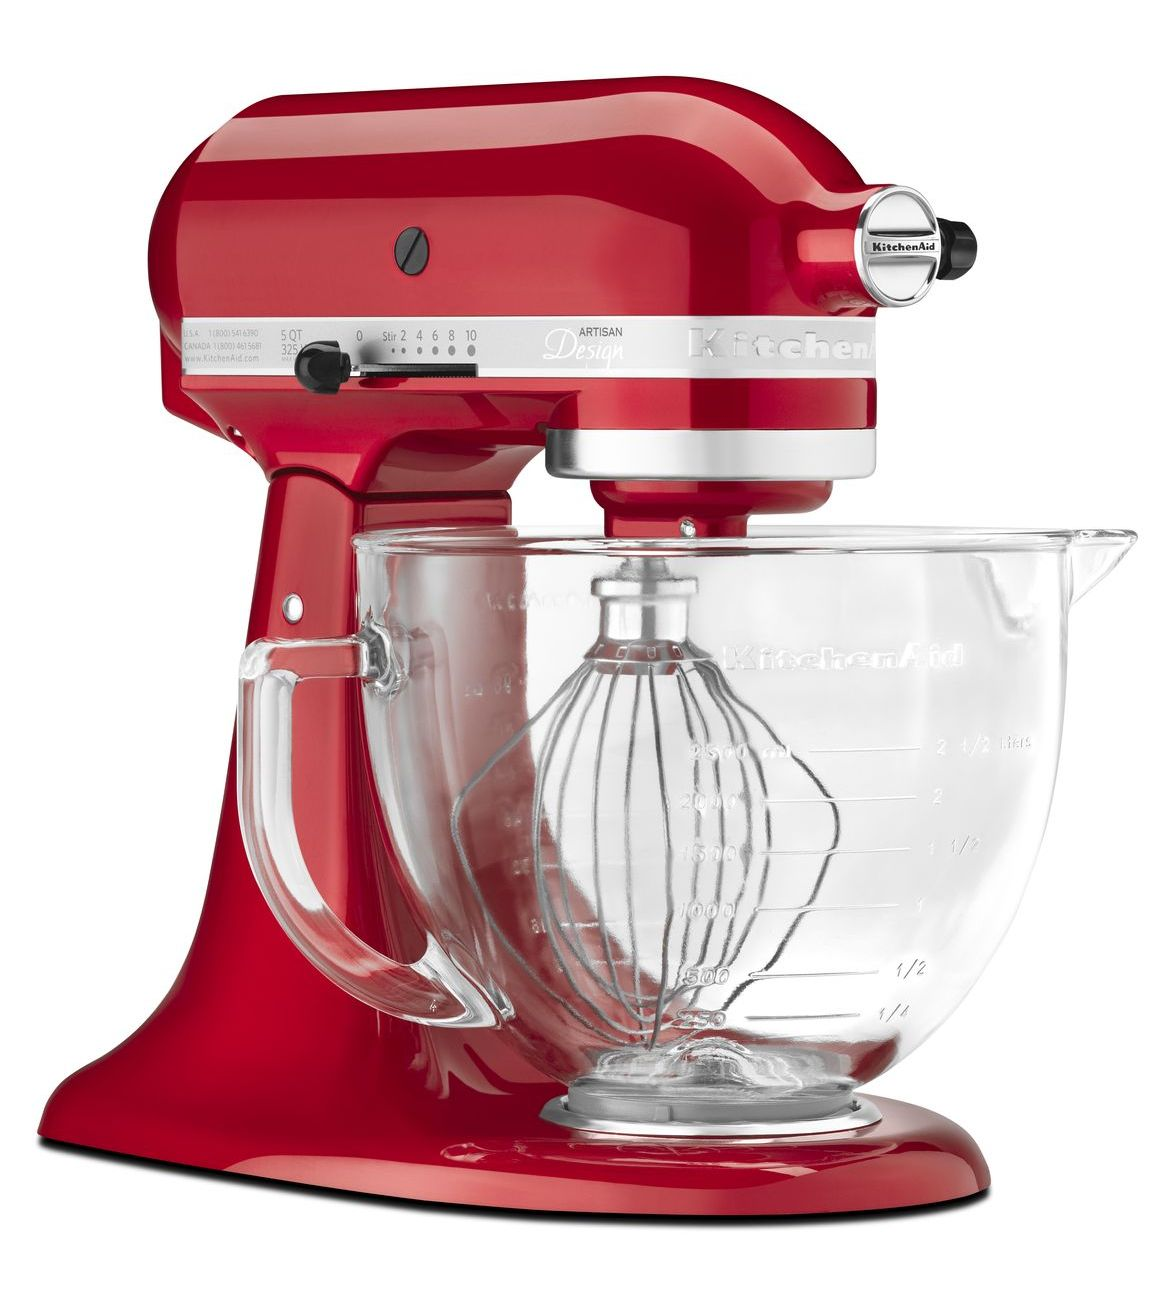 Must have baking essentials every home baker needs includes a stand mixer.